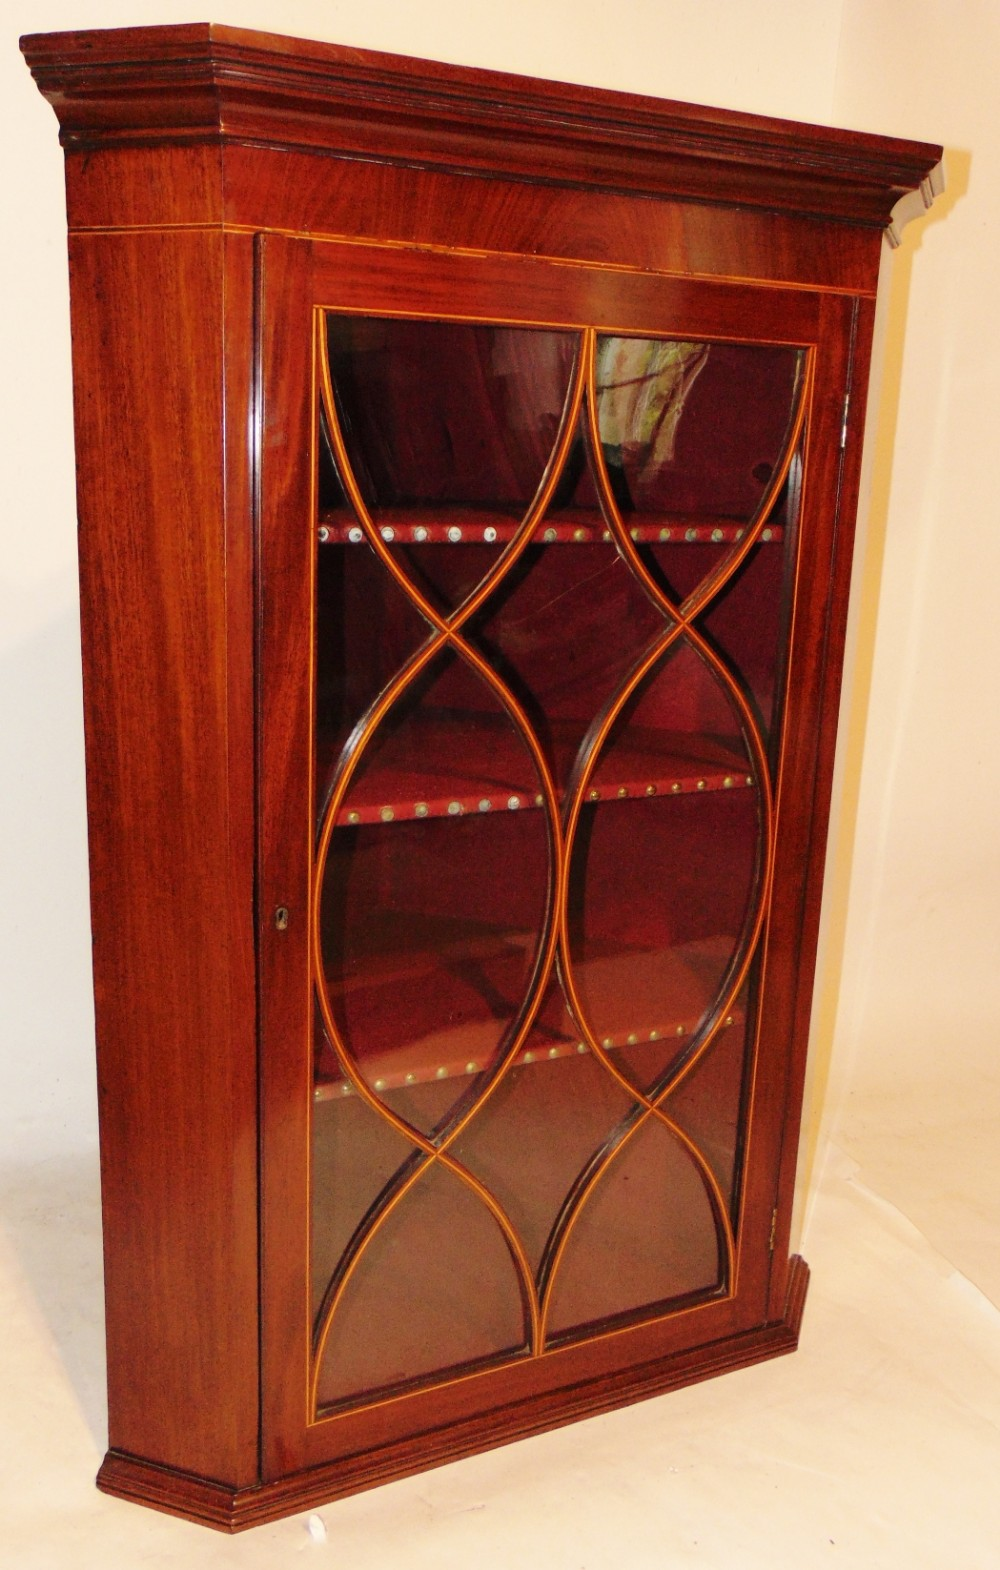 scottish georgian mahogany hanging corner cabinet circa 1795